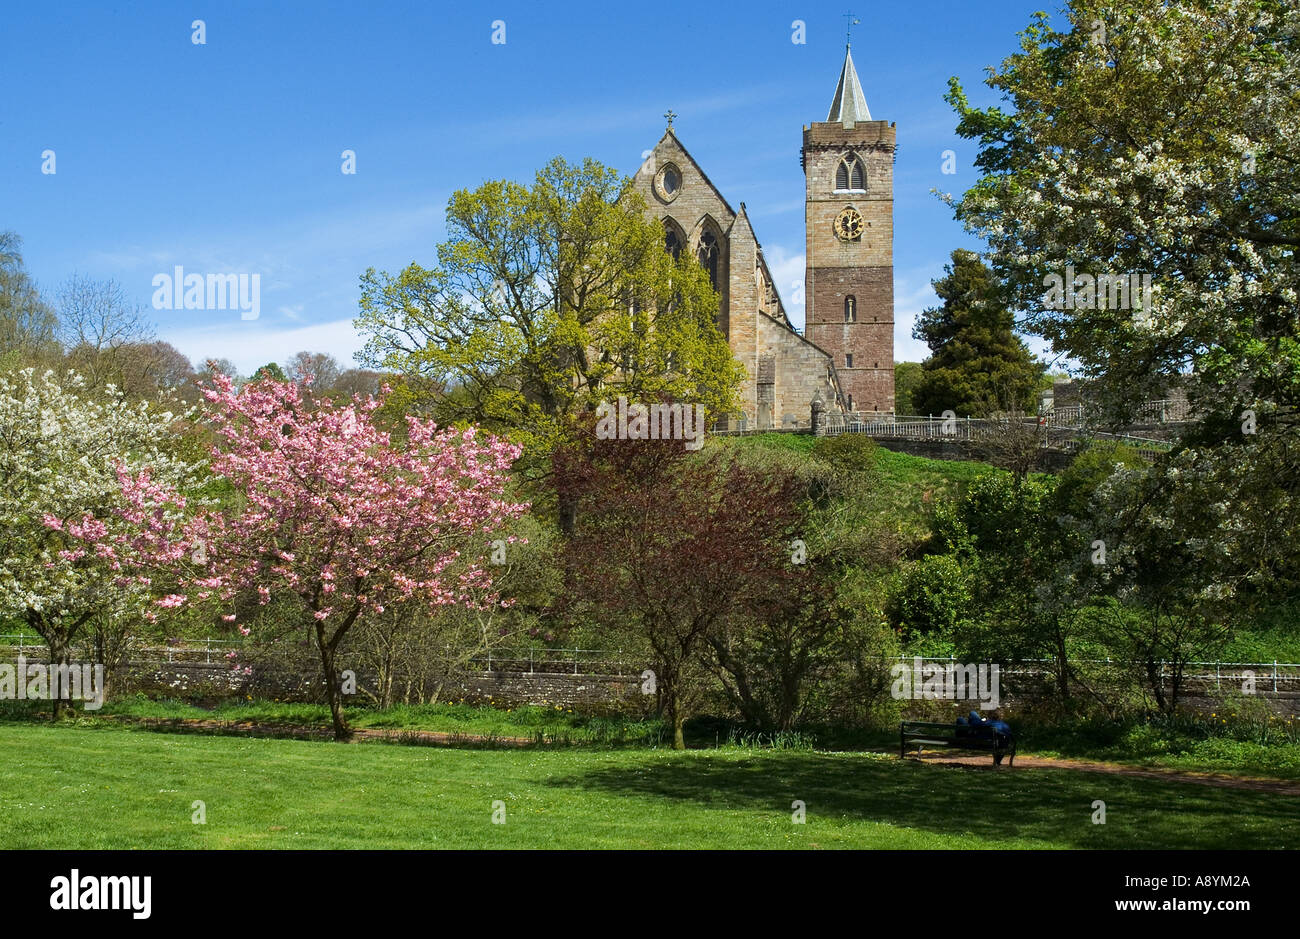 dh Dunblane cathedral DUNBLANE STIRLINGSHIRE Church clock tower riverbank Allan Water springtime cherry blossom trees Stock Photo